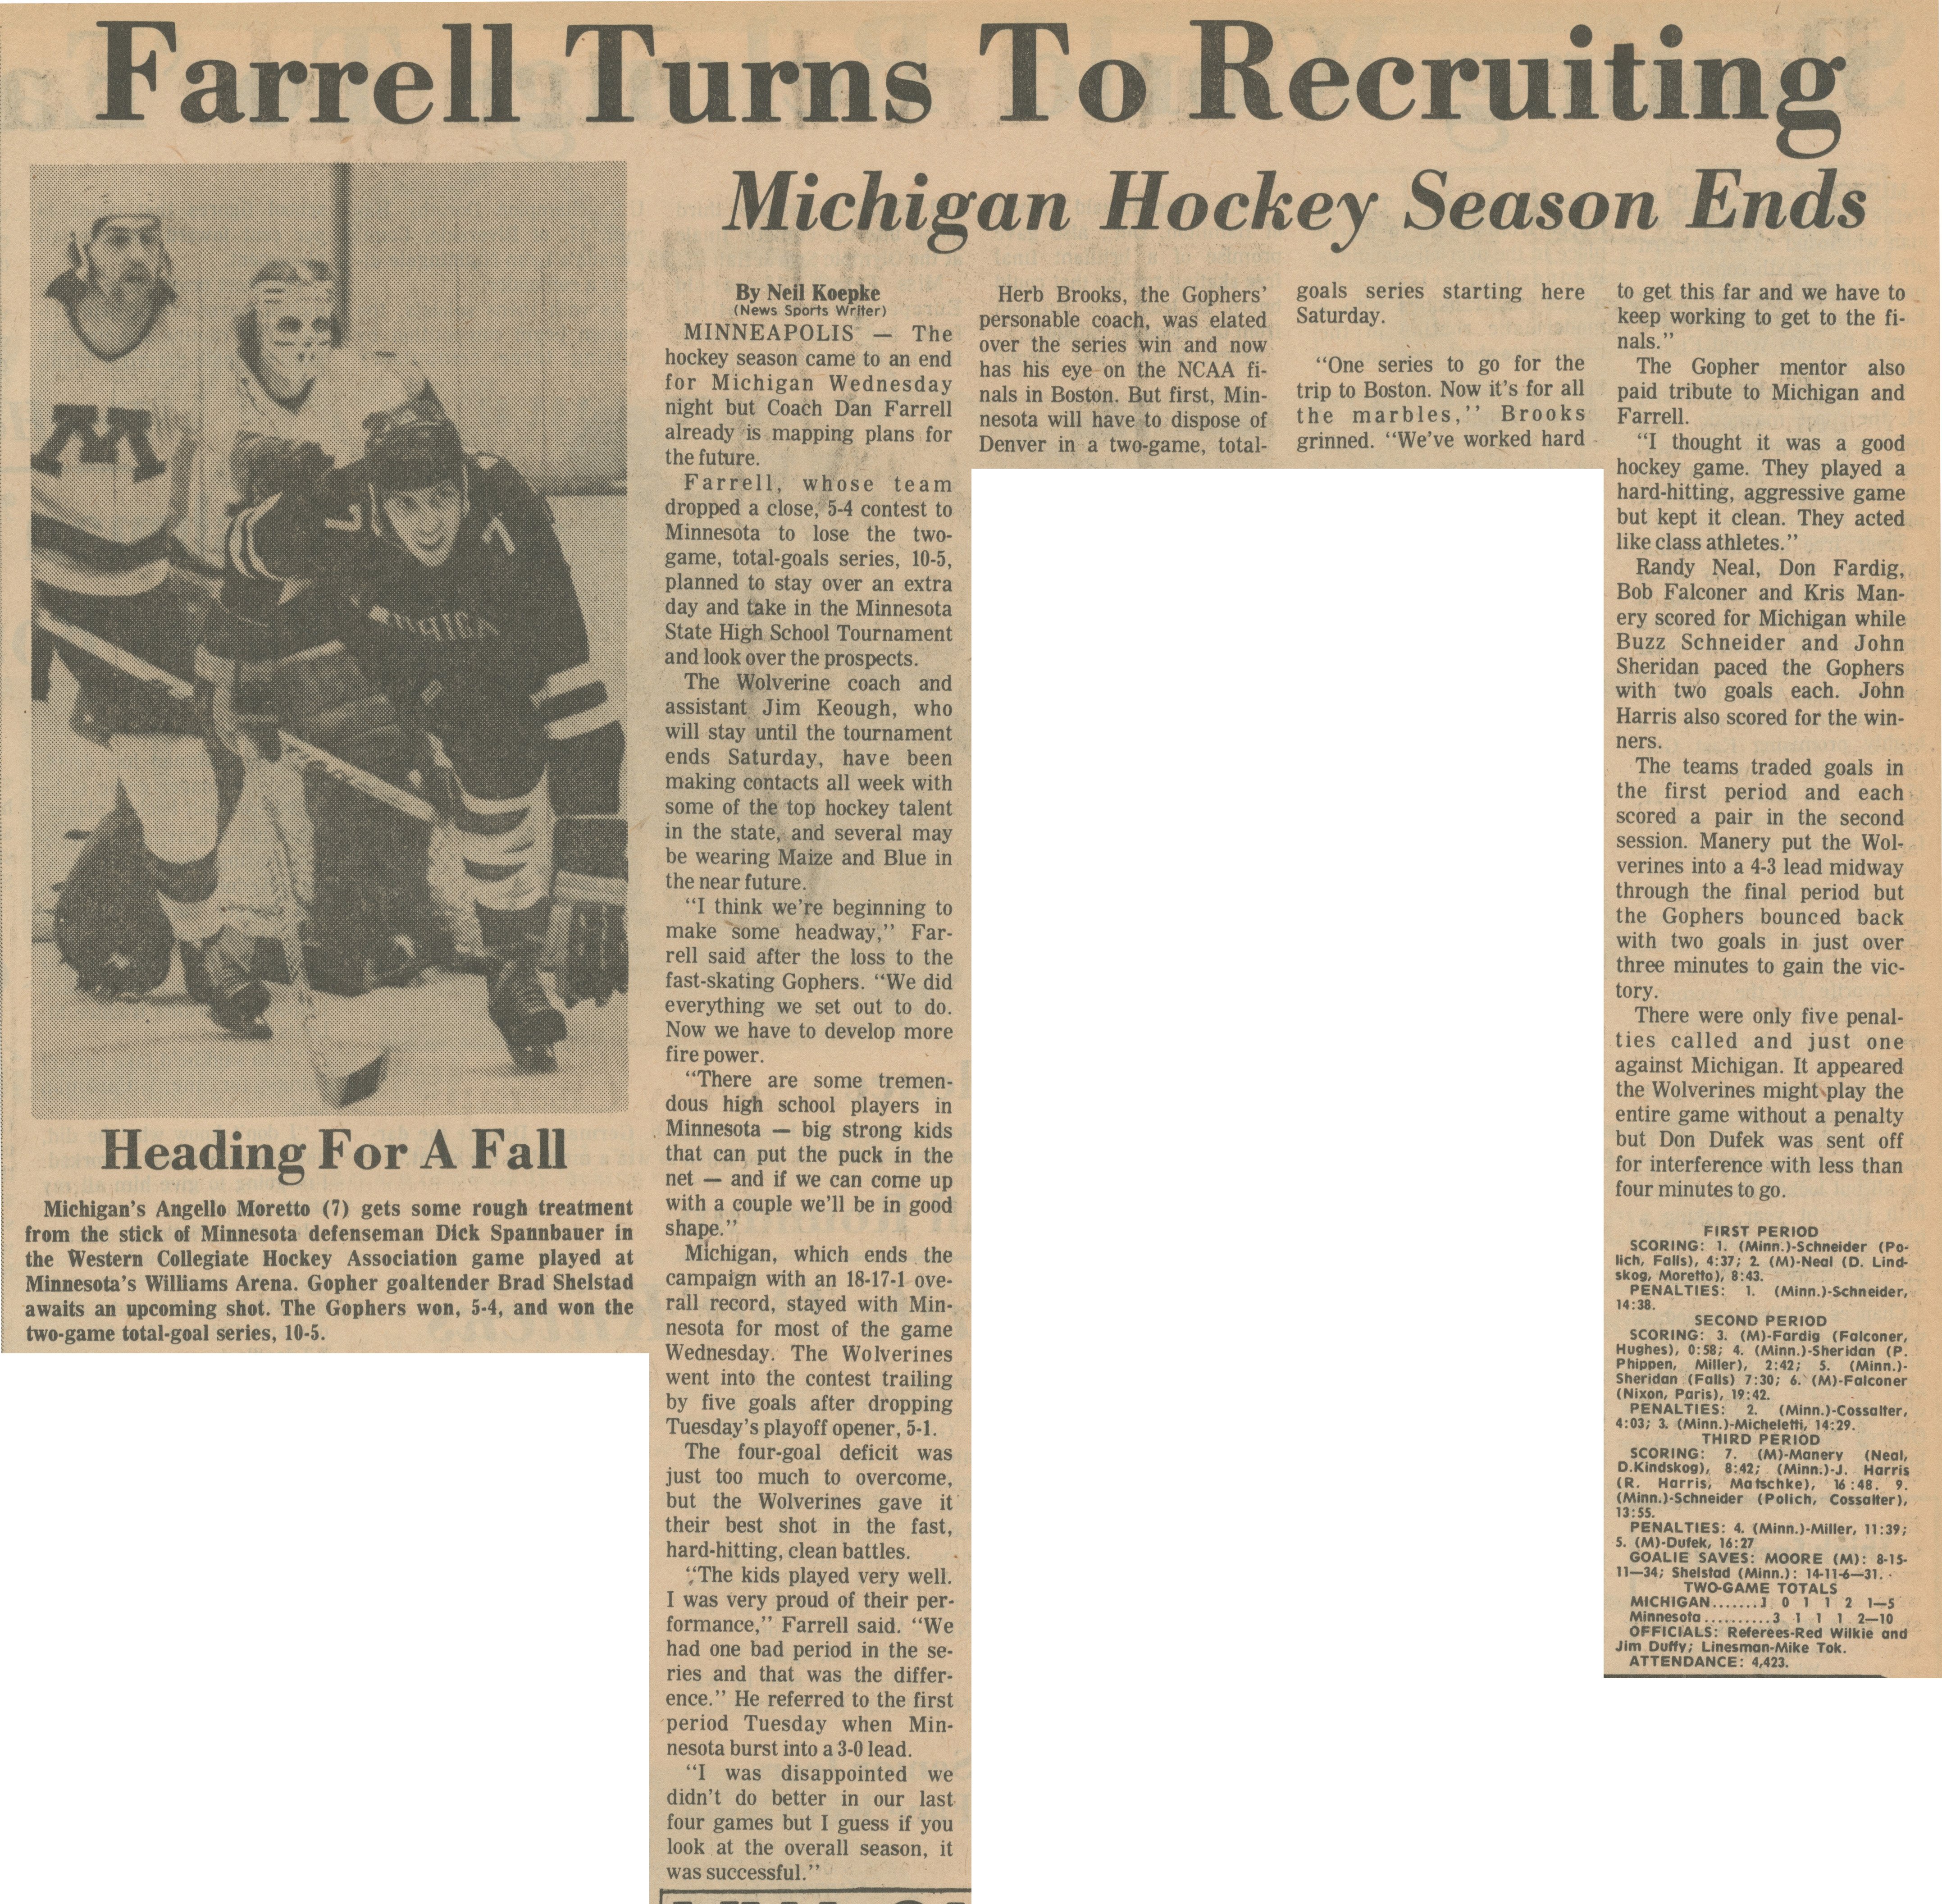 Farrell Turns To Recruiting - Michigan Hockey Season Ends image